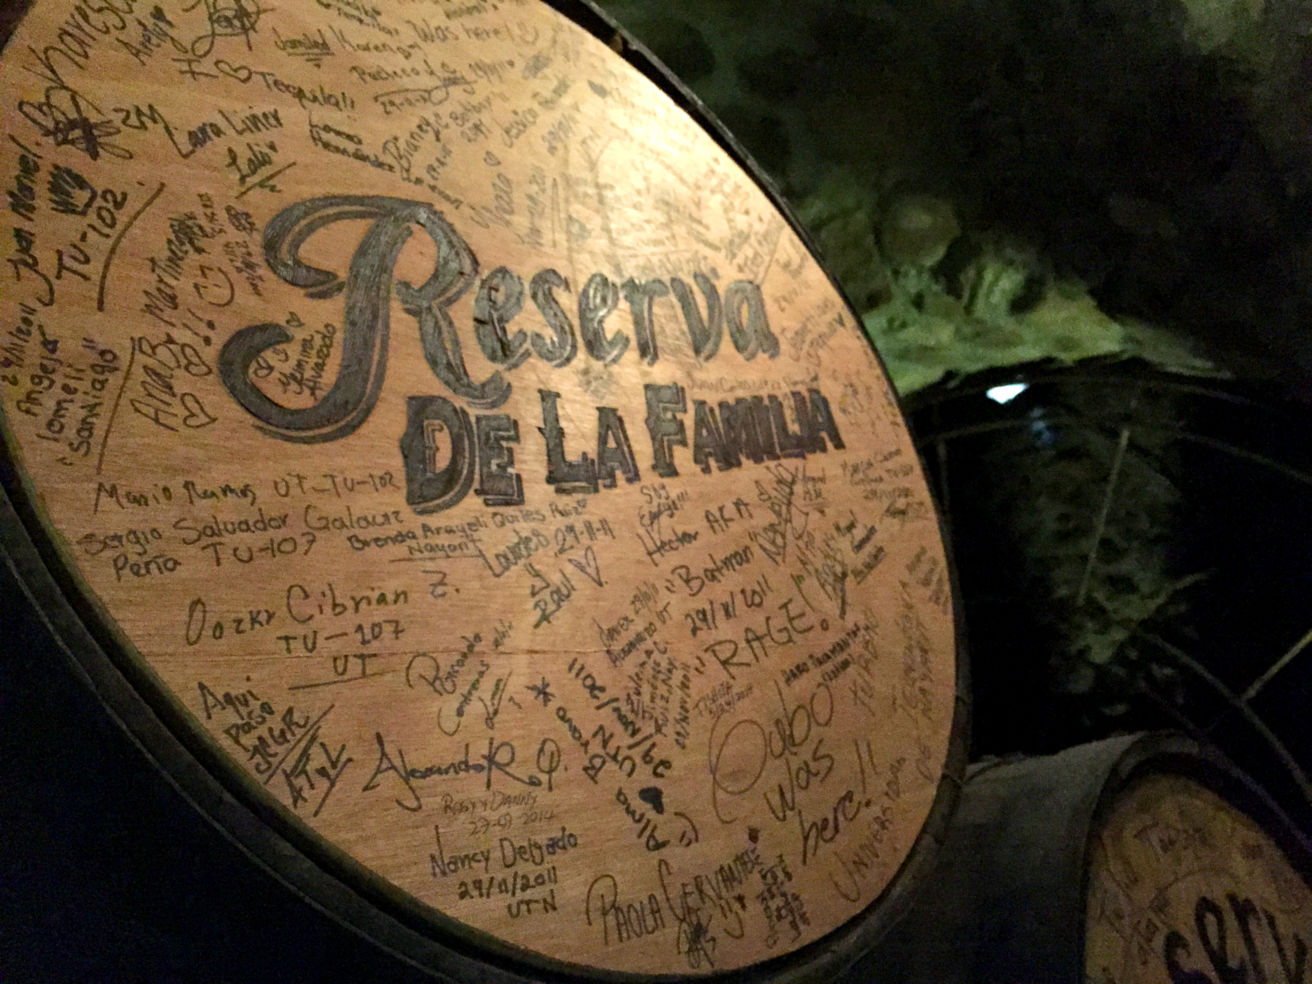 Barrel in the Reserva de la Familia Cellar at La Rojeña in Tequila